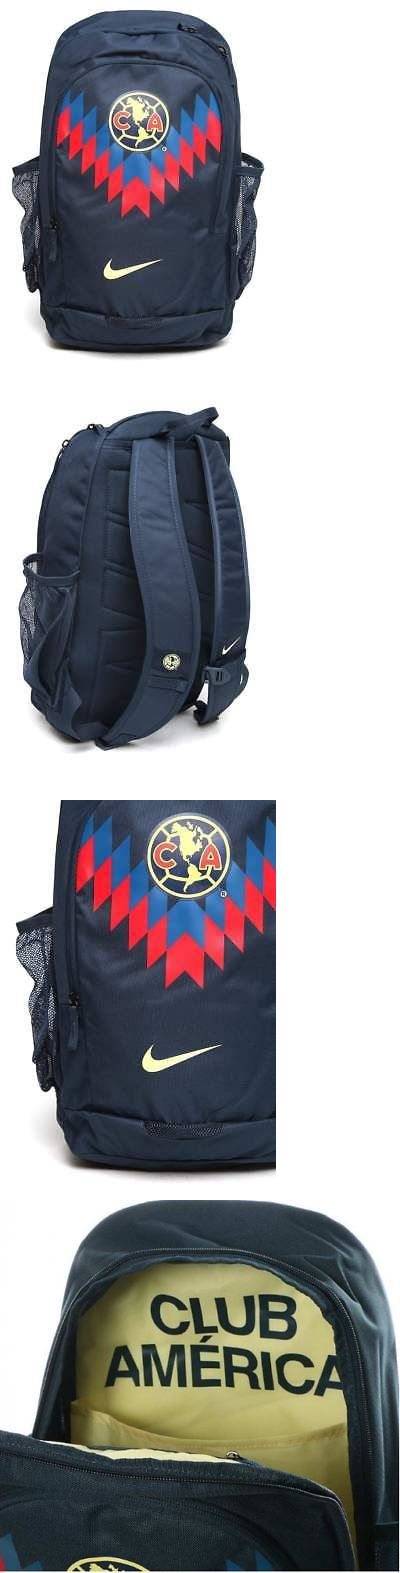 Other Football Clothing and Accs 74676: Club America Mochila 2017 Aguilas Backpack -> BUY IT NOW ONLY: $75 on eBay!